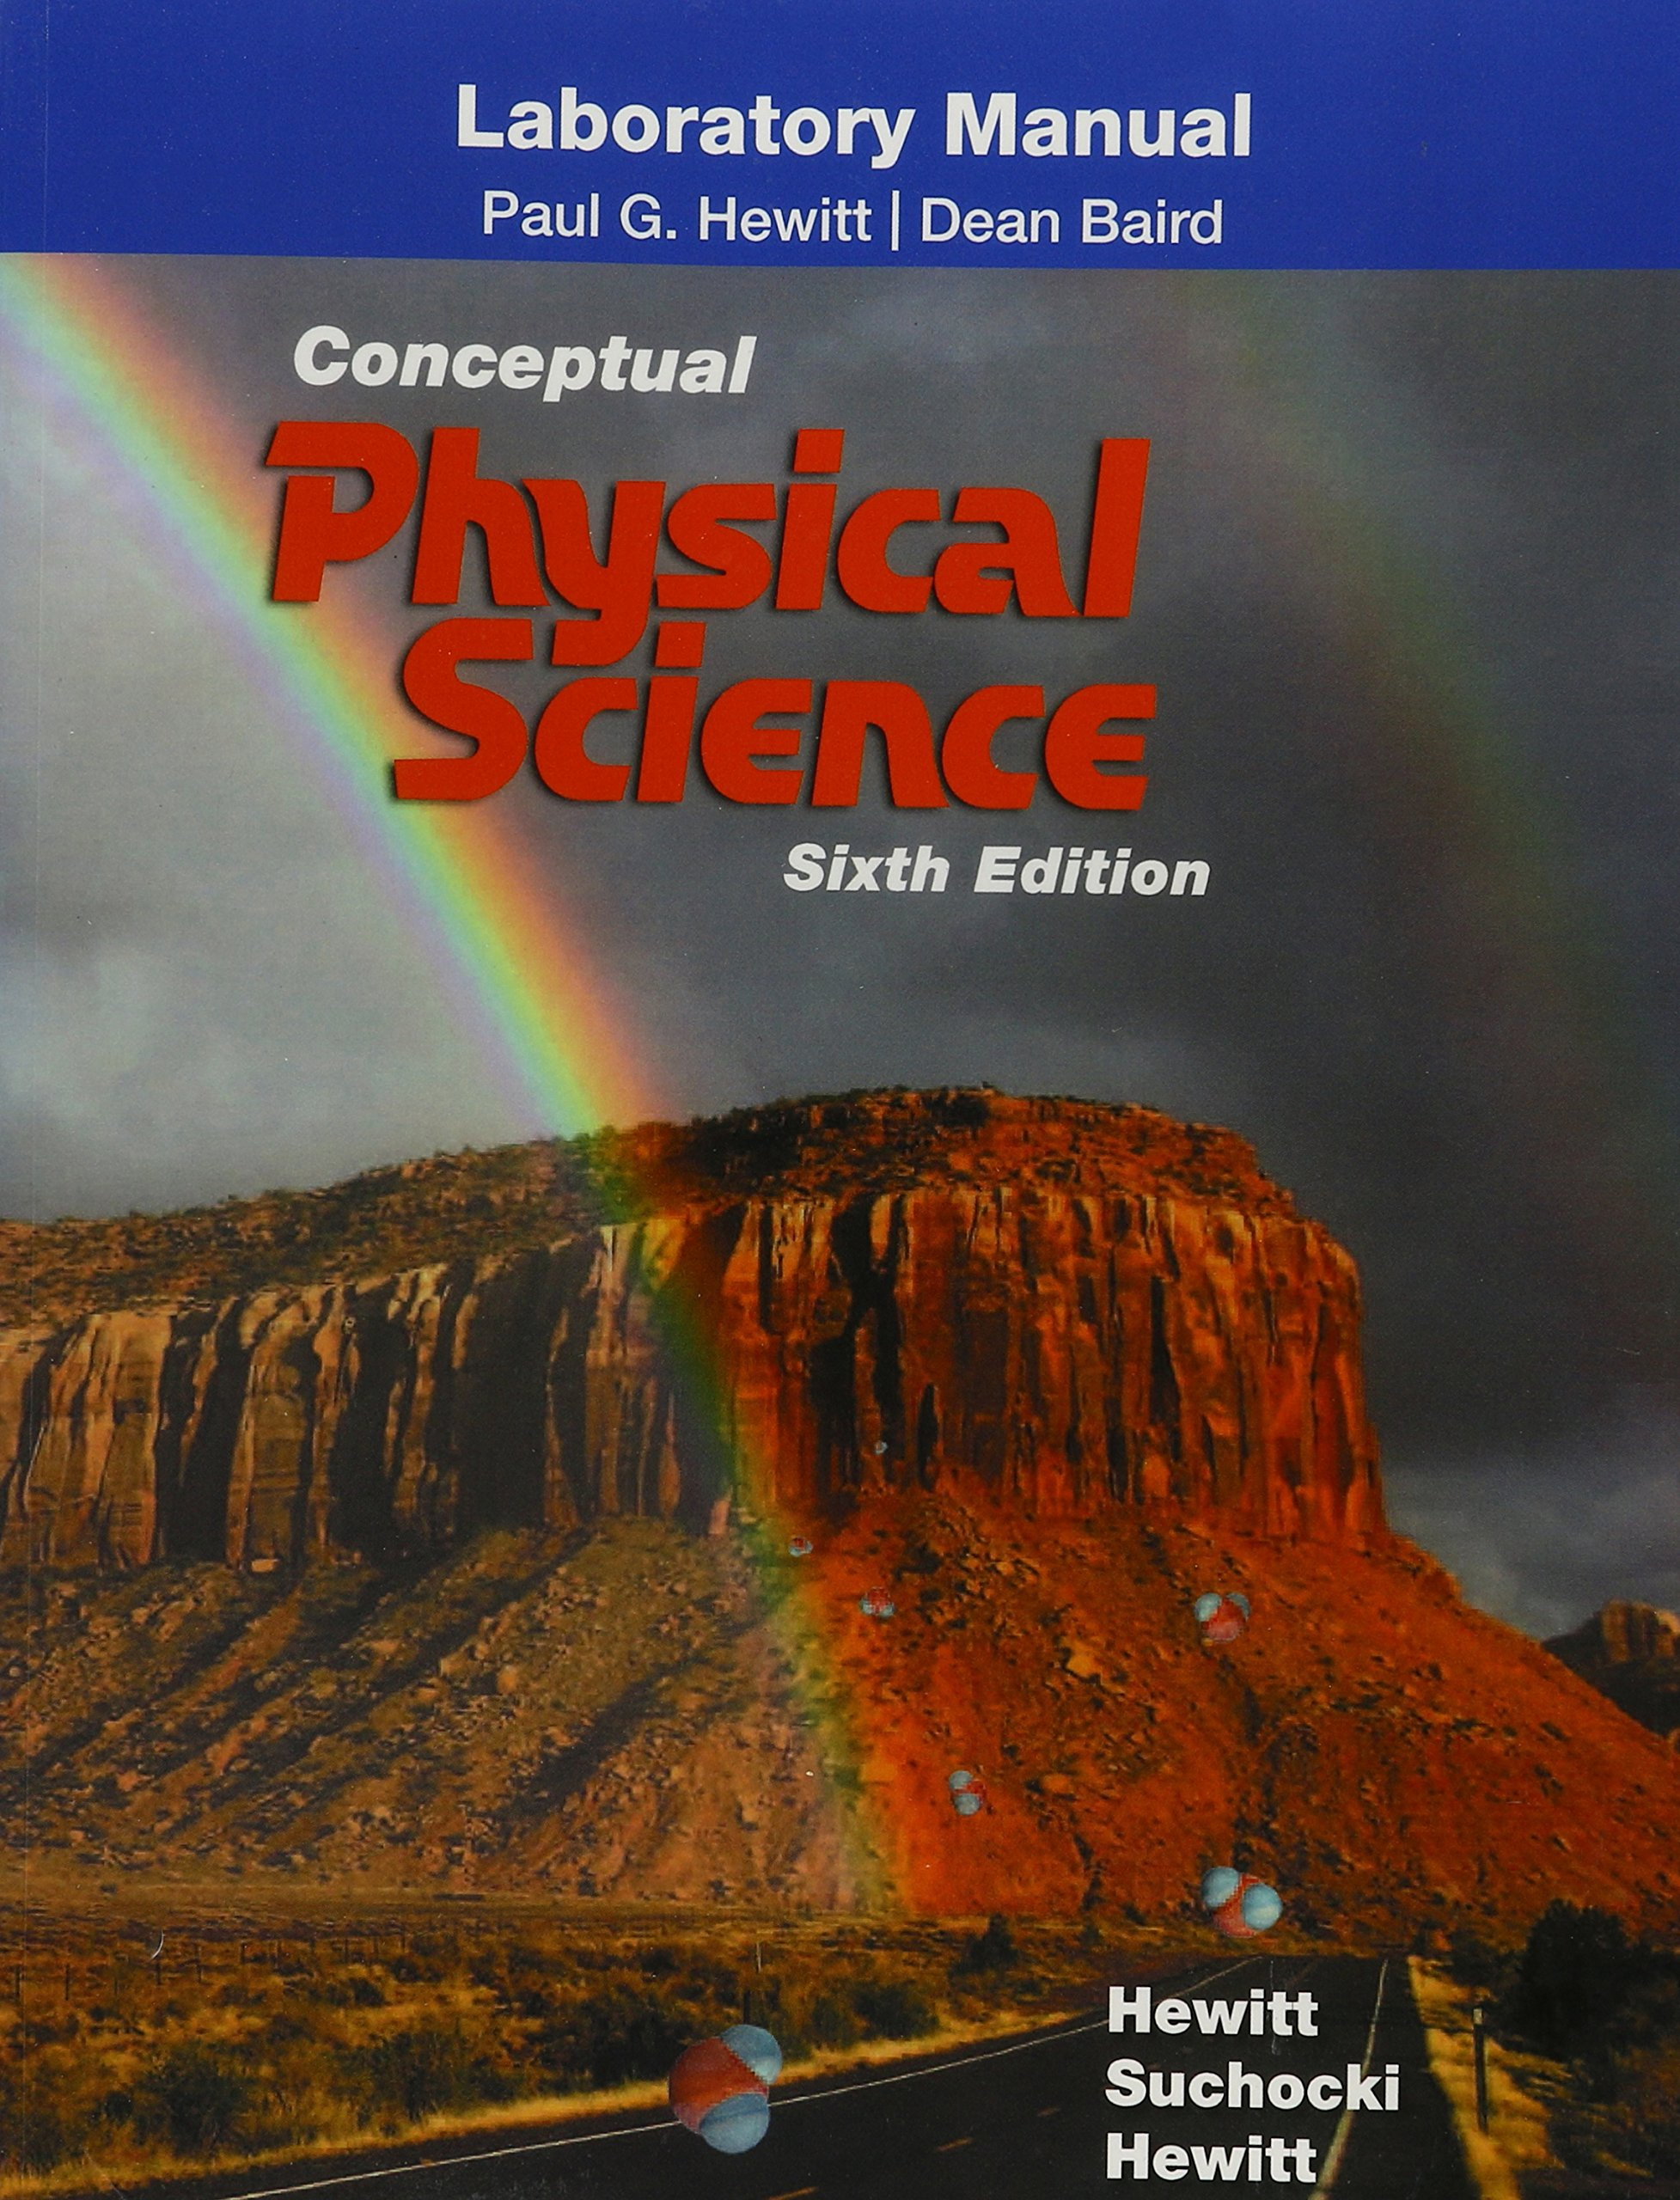 Laboratory Manual for Conceptual Physical Science: Paul G. Hewitt, John A.  Suchocki, Leslie A. Hewitt: 9780134091419: Books - Amazon.ca